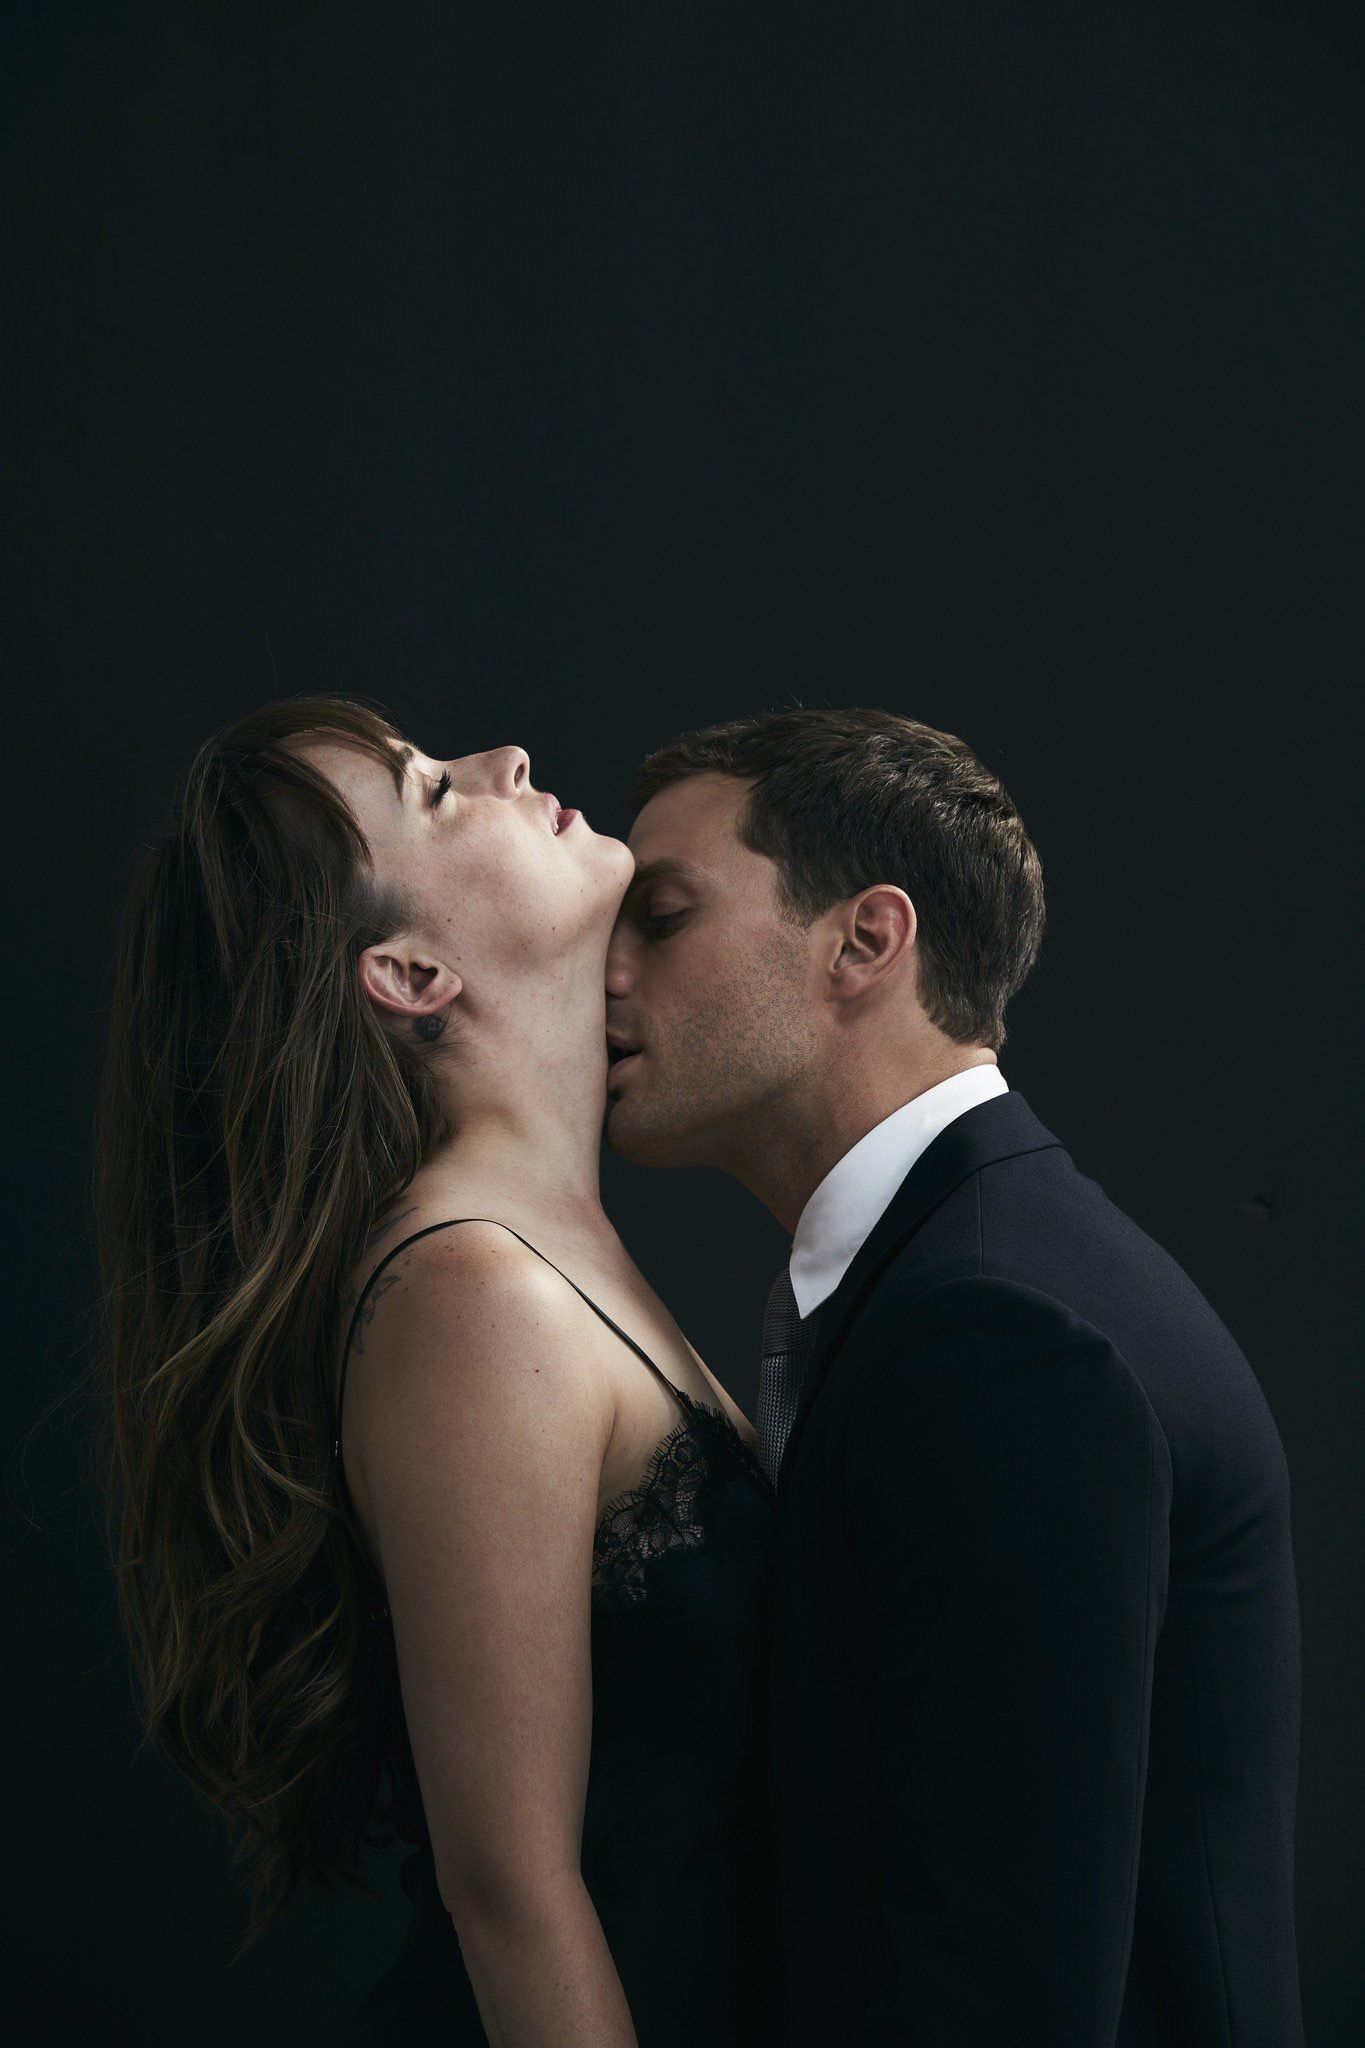 Freed Promo Pics With Images Fifty Shades Movie Fifty Shades